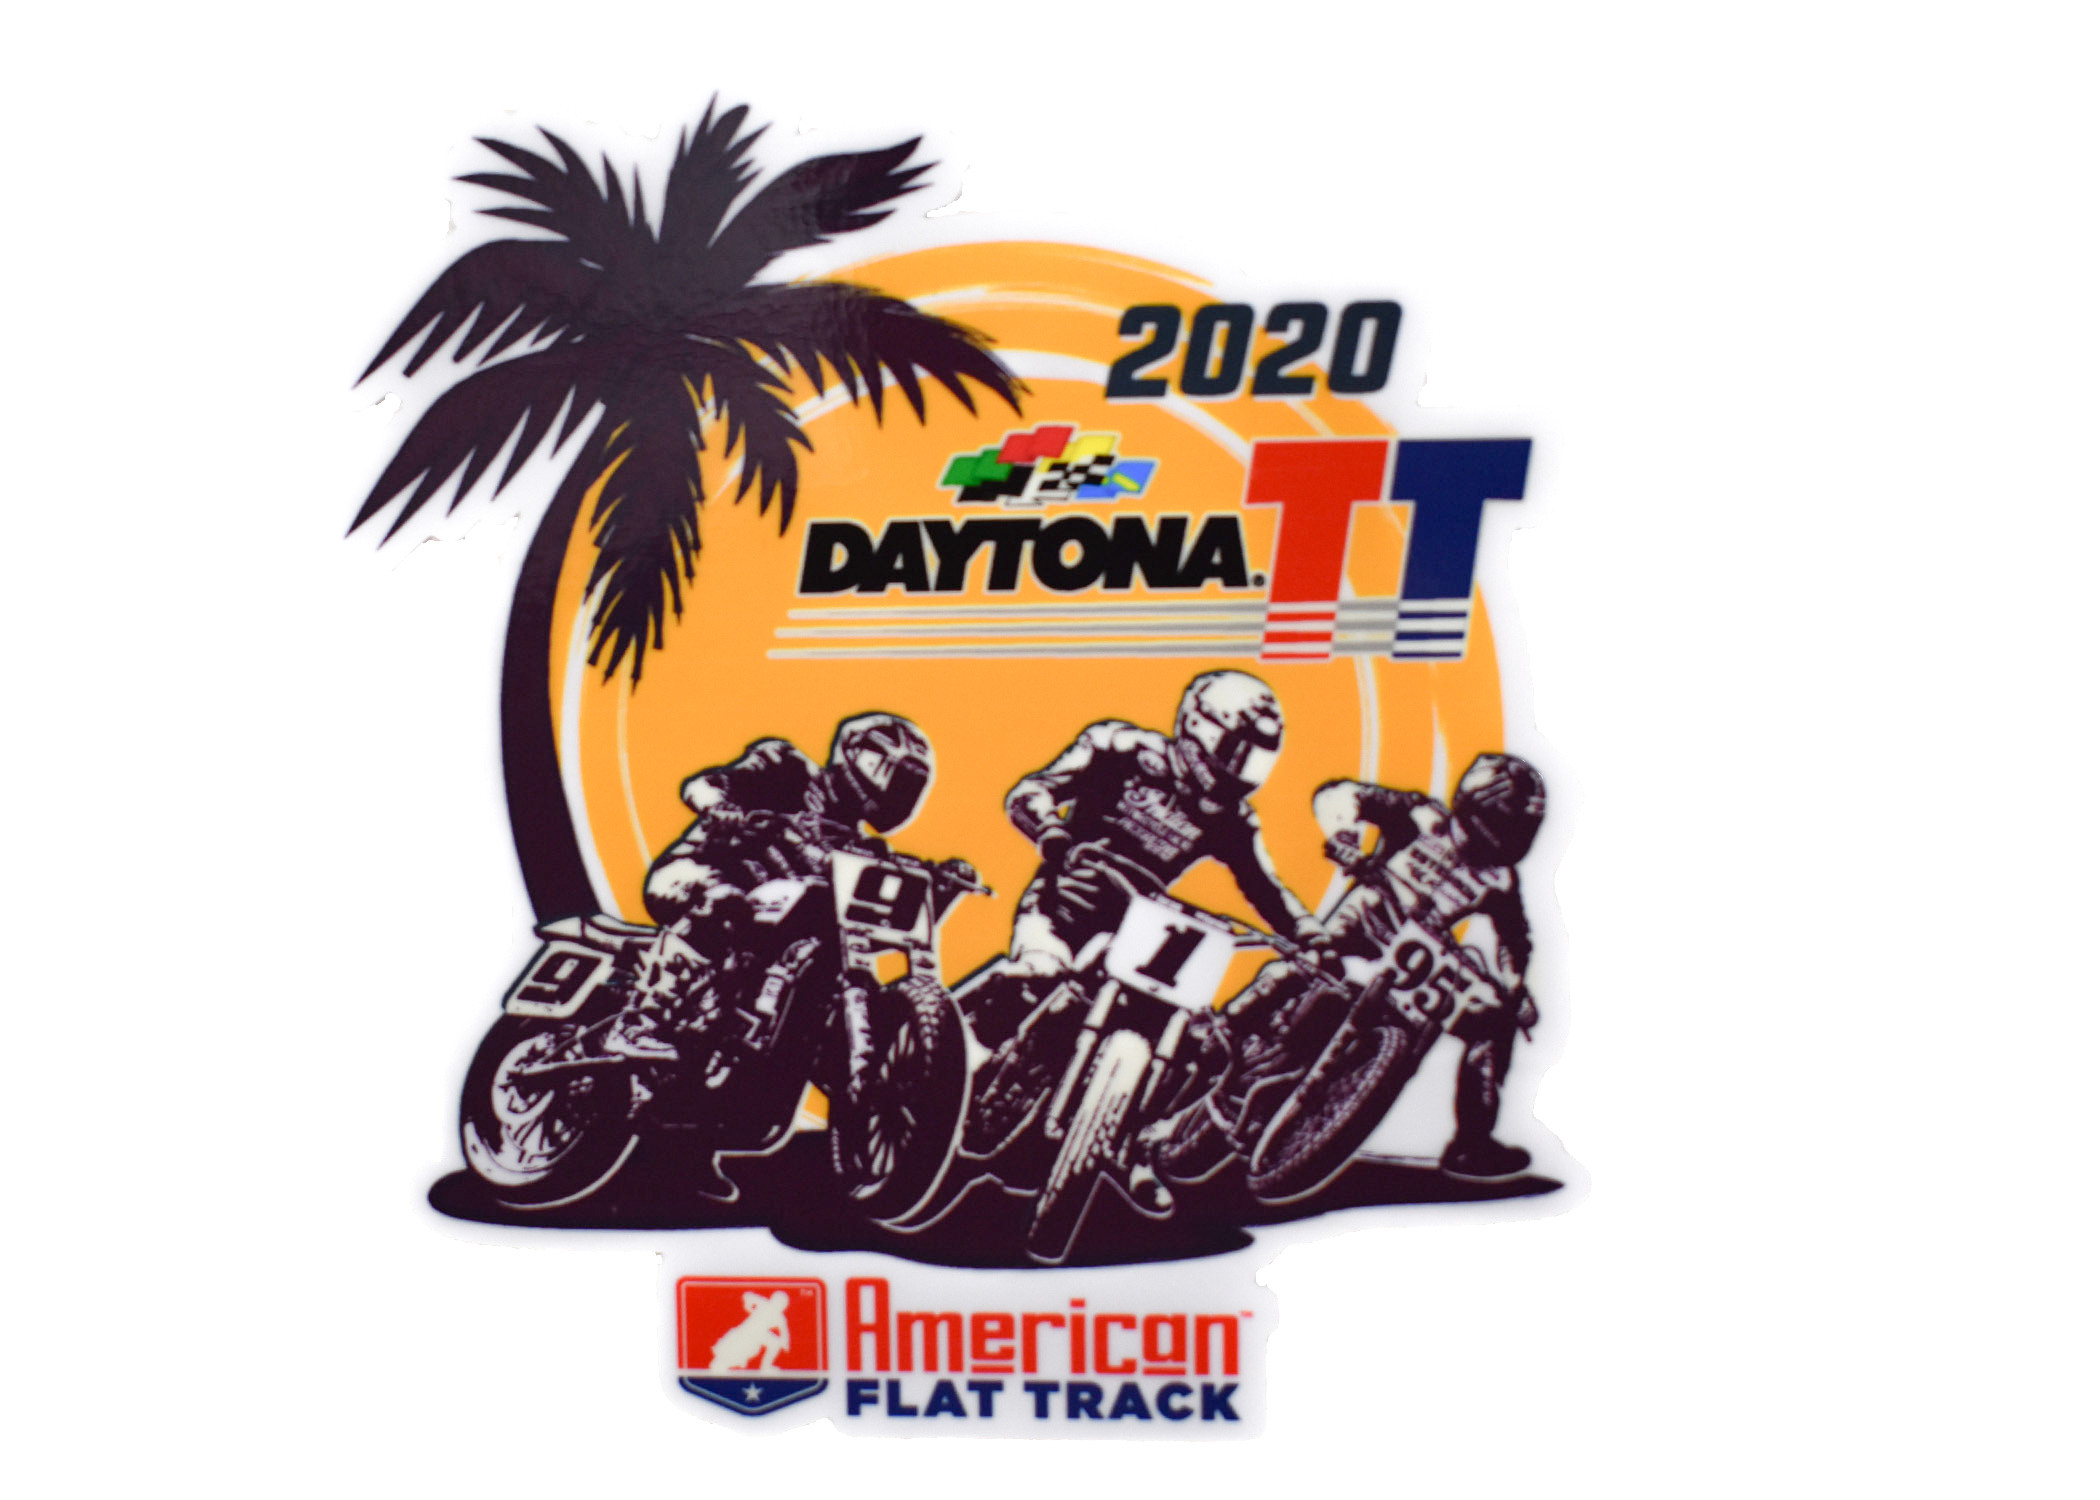 2020 Daytona TT Event Sticker